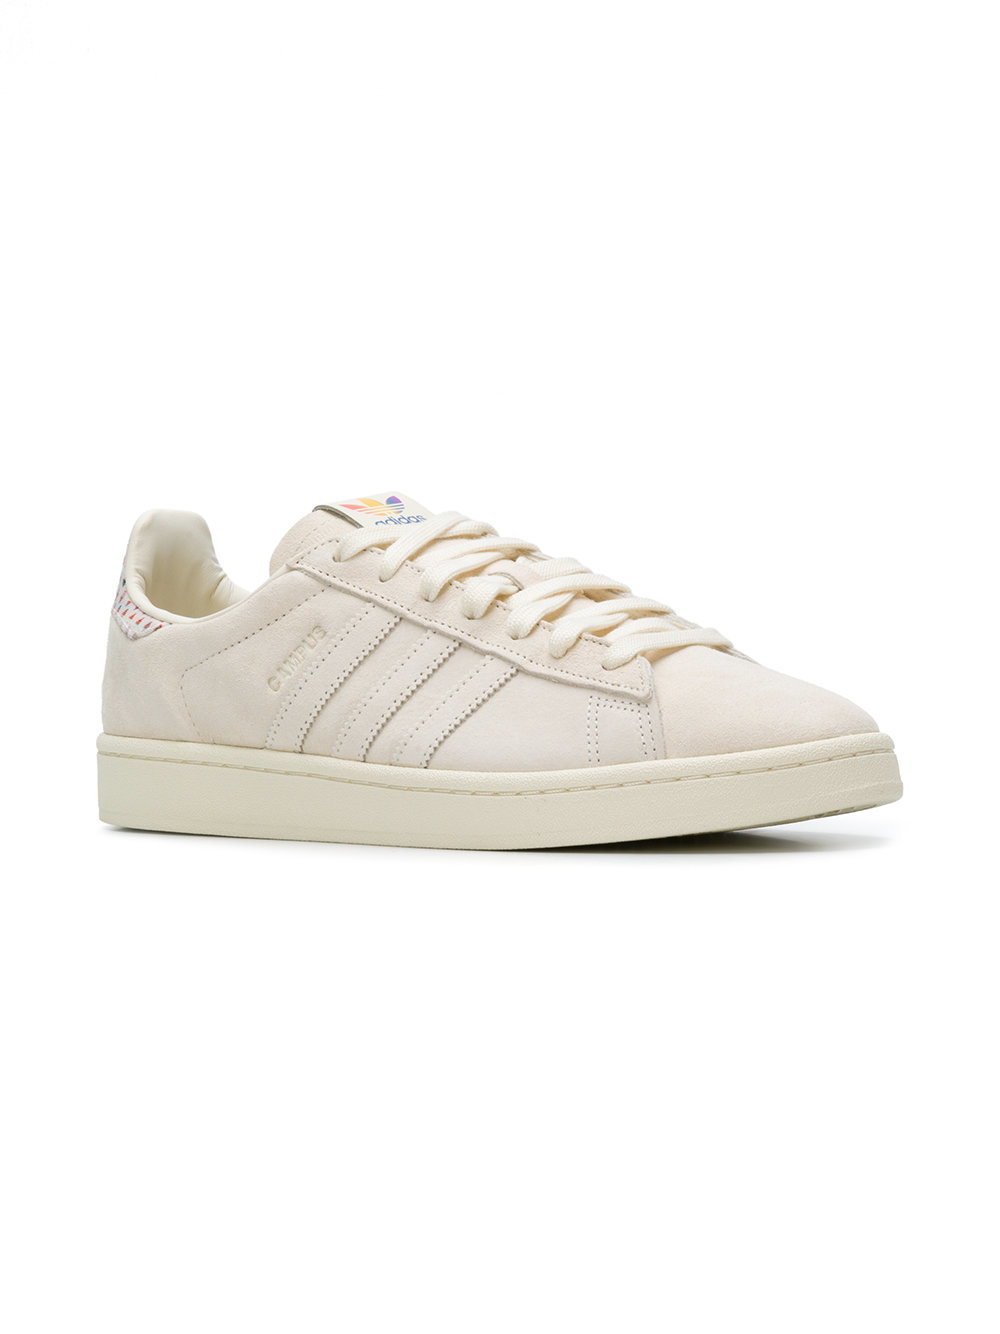 info for 927b4 c4bd0 ... Beige Leather Low Top Sneakers adidas Campus Pride Sneakers ...